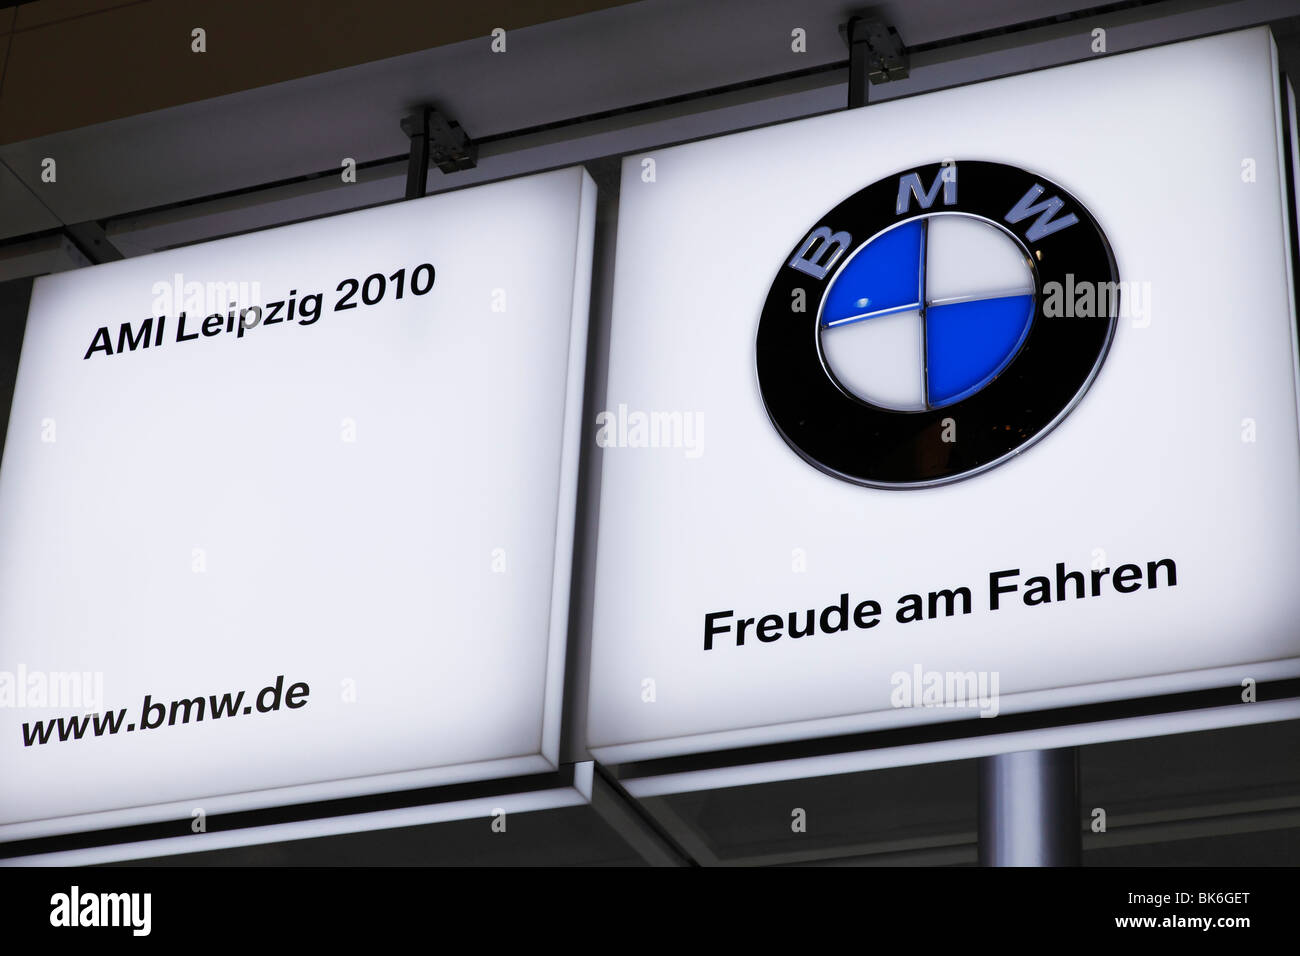 BMW at the Auto Mobil International (AMI) - the Motor Show 2010 in Leipzig, Germany - Stock Image